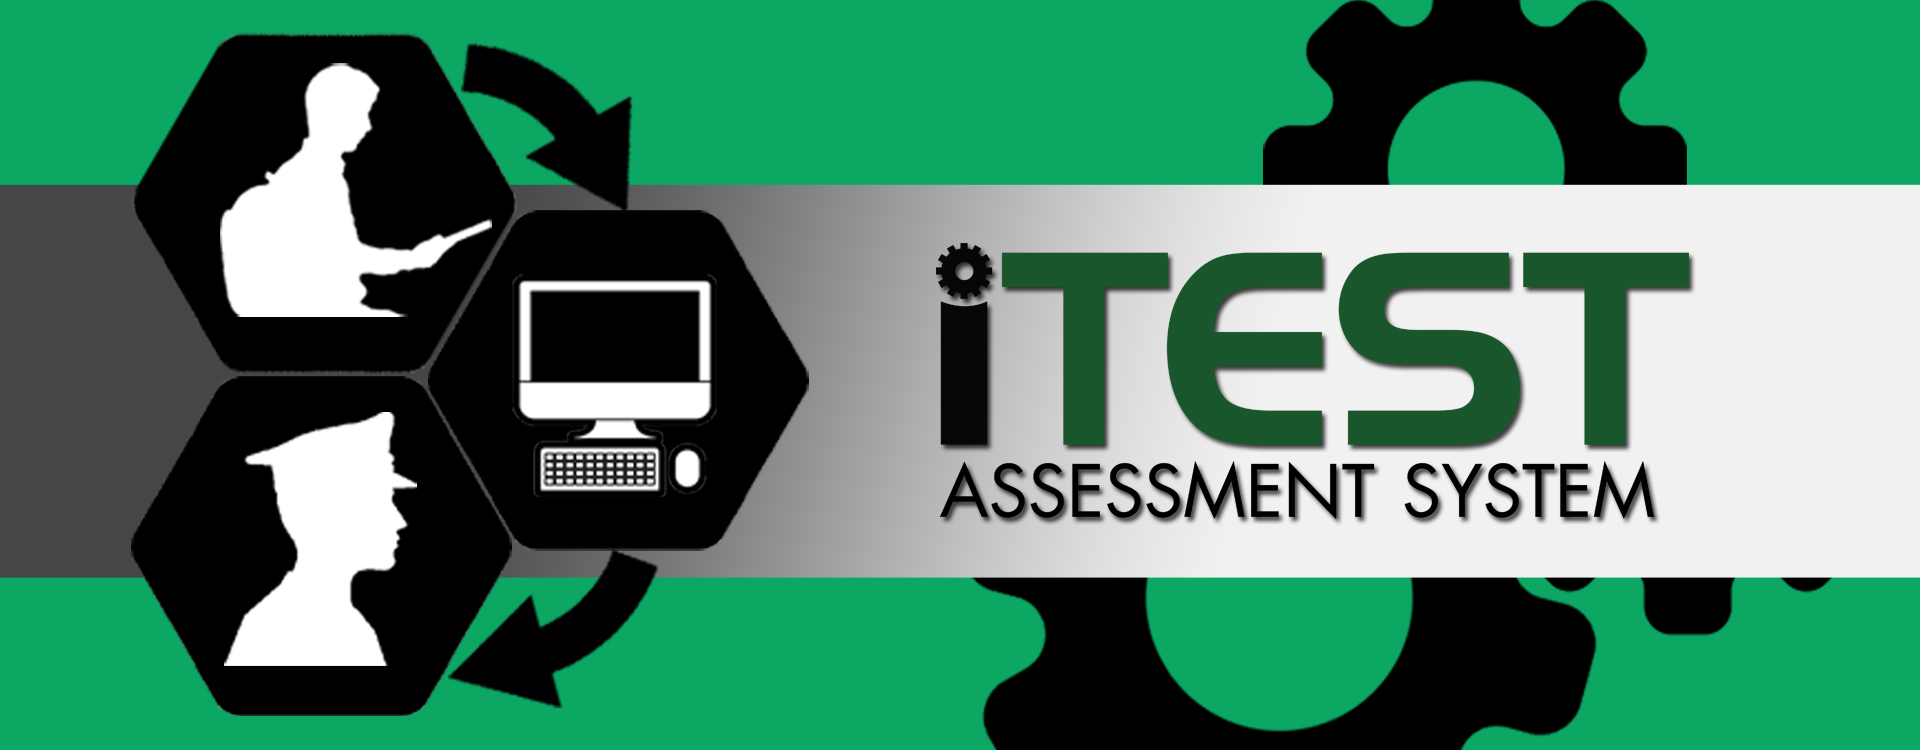 Jebsen Competency Development chooses iTEST for their Assessment System